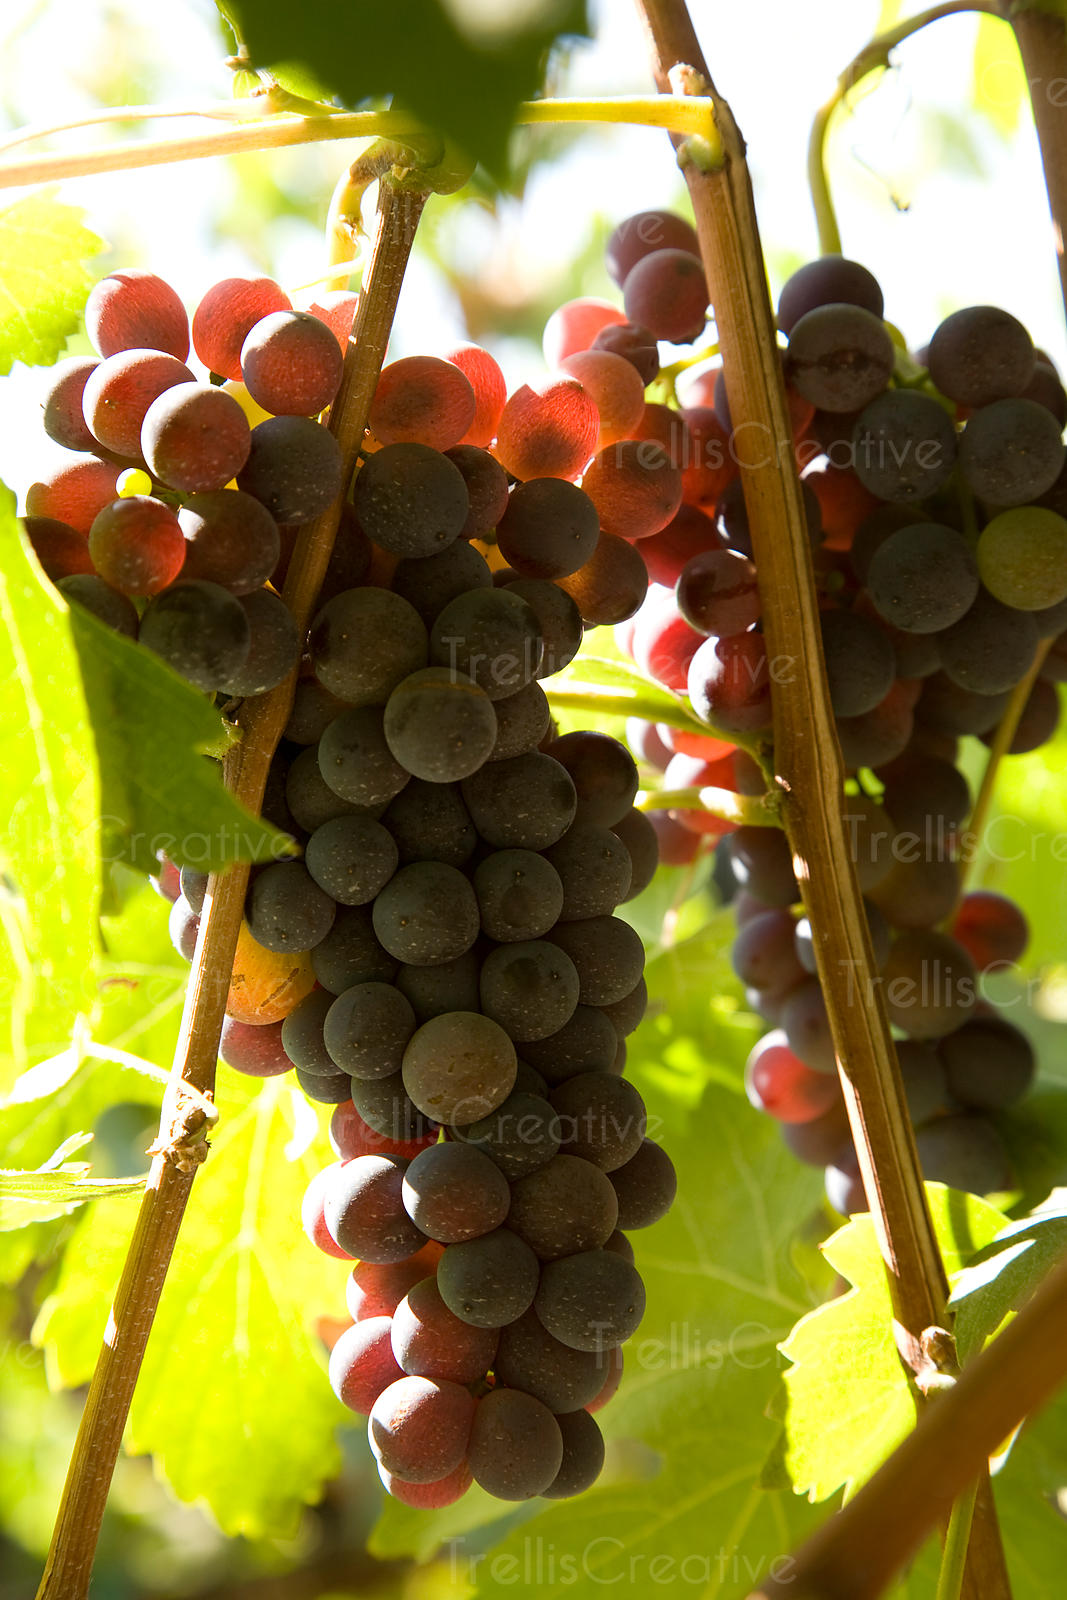 Clusters of ripe nebbiolo grapes on the vine